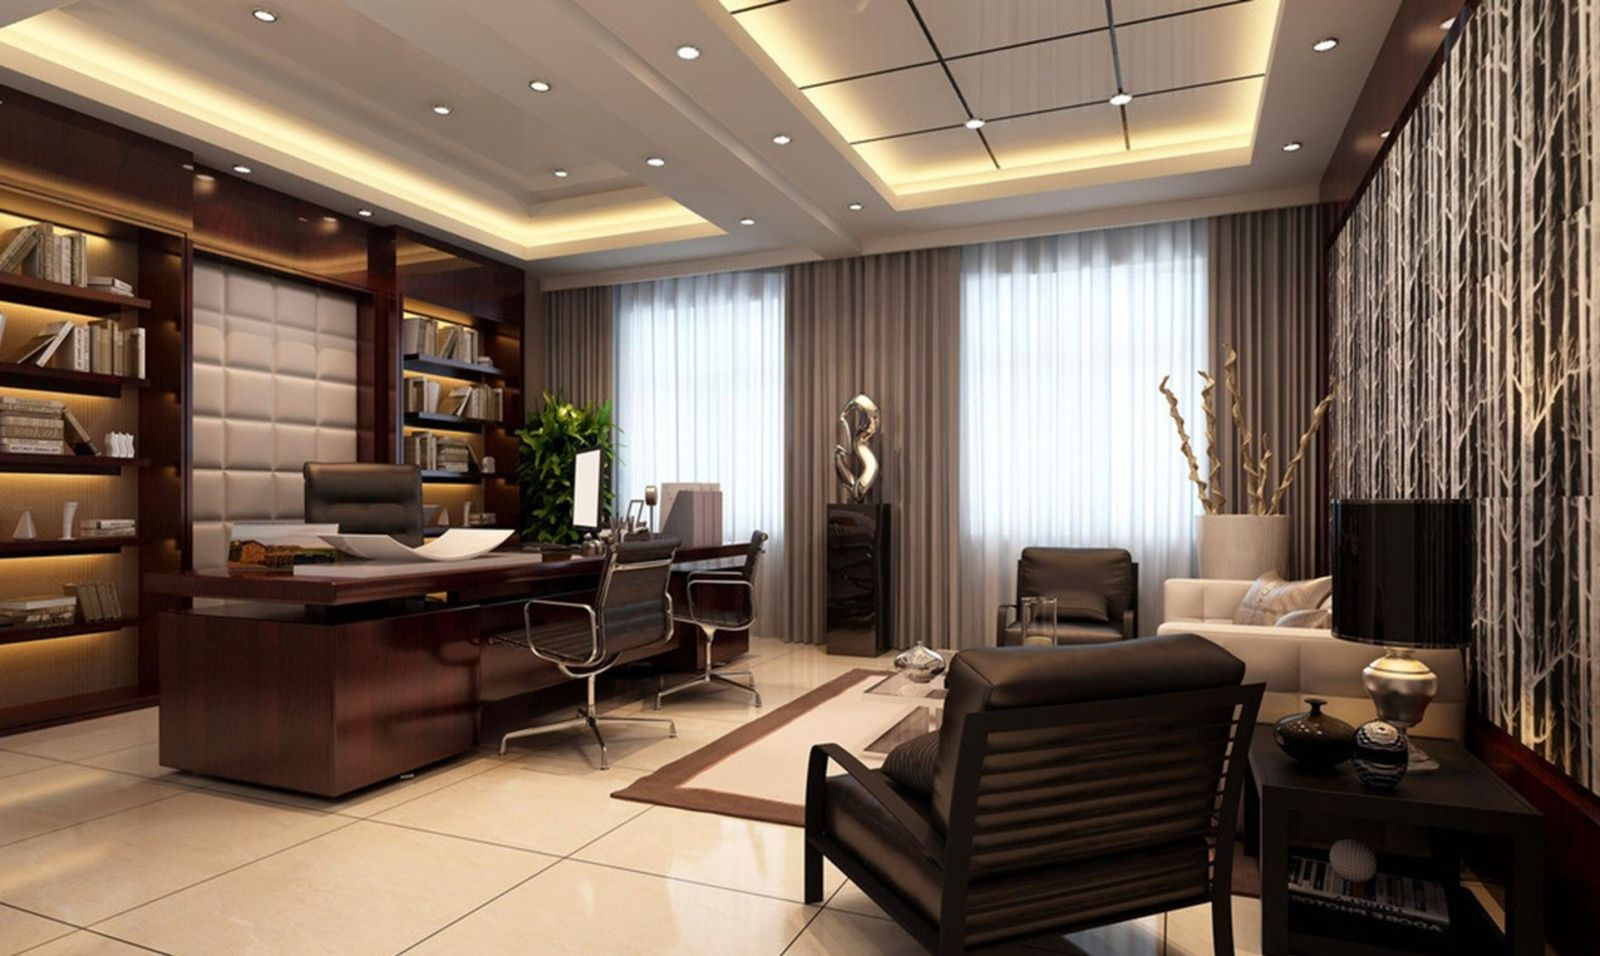 Modern ceo office interior design with executive office for Modern interior design for office